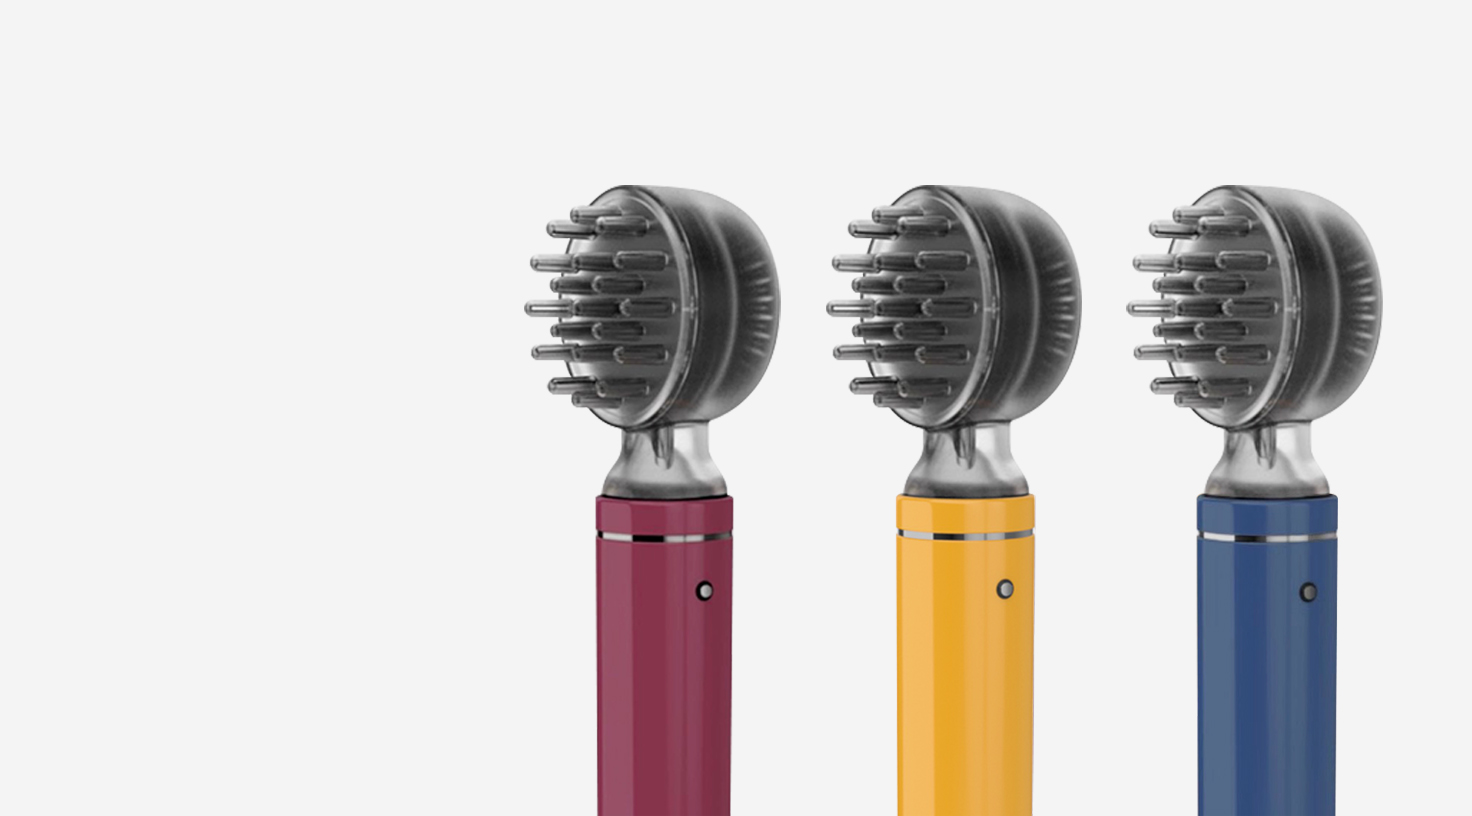 Light in hand - Nyuair hair dryer is engineered with the motorin the handle. Shifting its center of gravity to feel balancedin the hand.